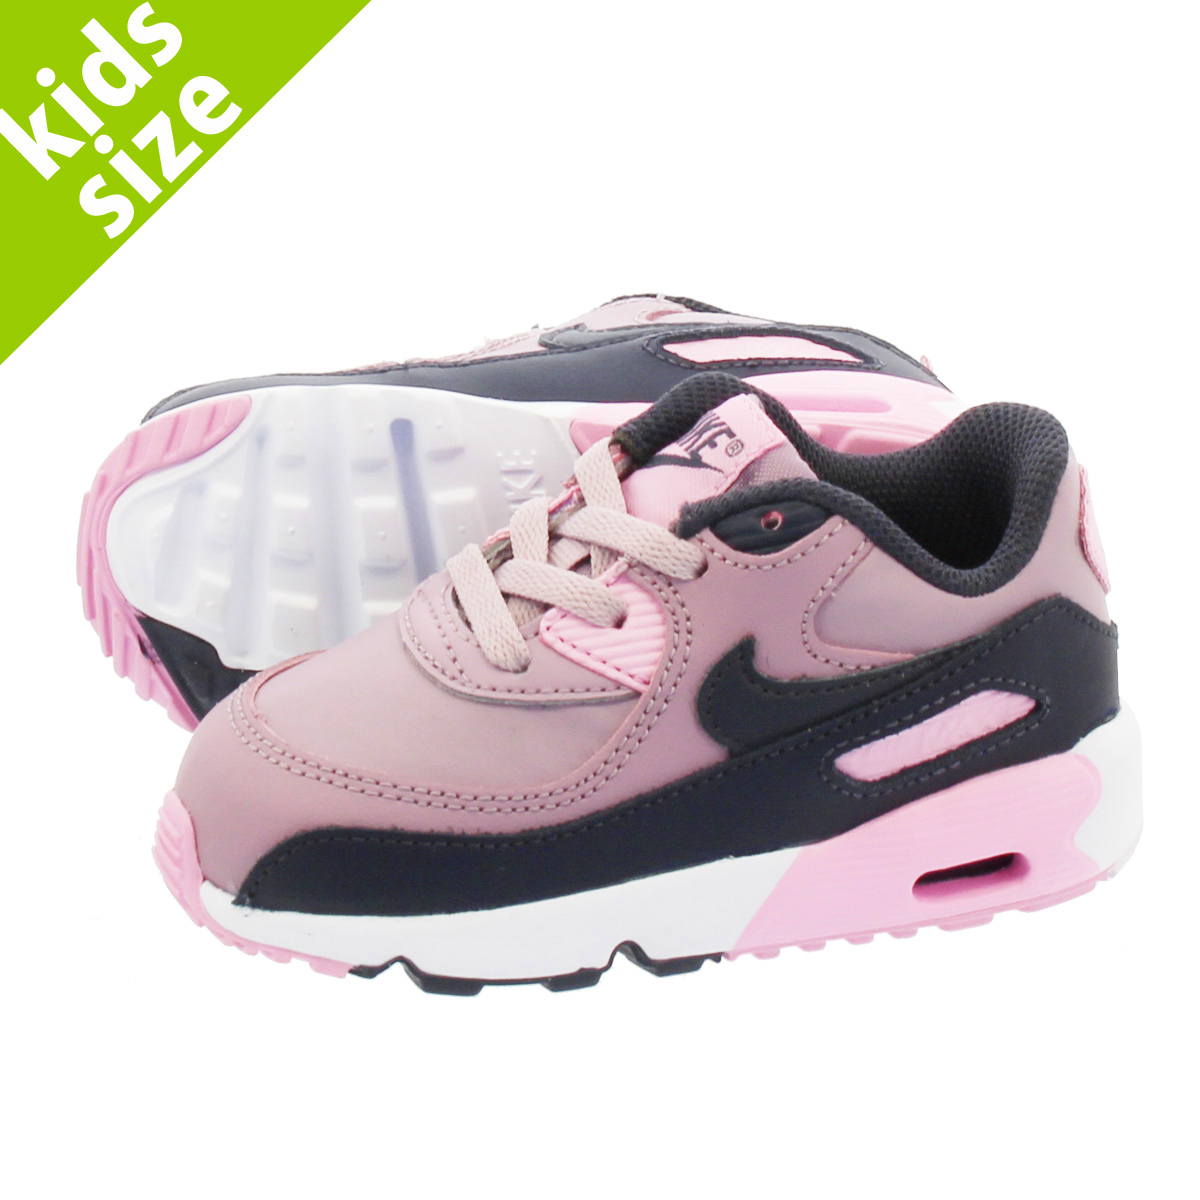 6d262782a7082 NIKE AIR MAX 90 LTR TD Kie Ney AMAX 90 leather TD ELEMENTAL  ROSE/GRIDIRON/PINK/WHITE 833,379-602